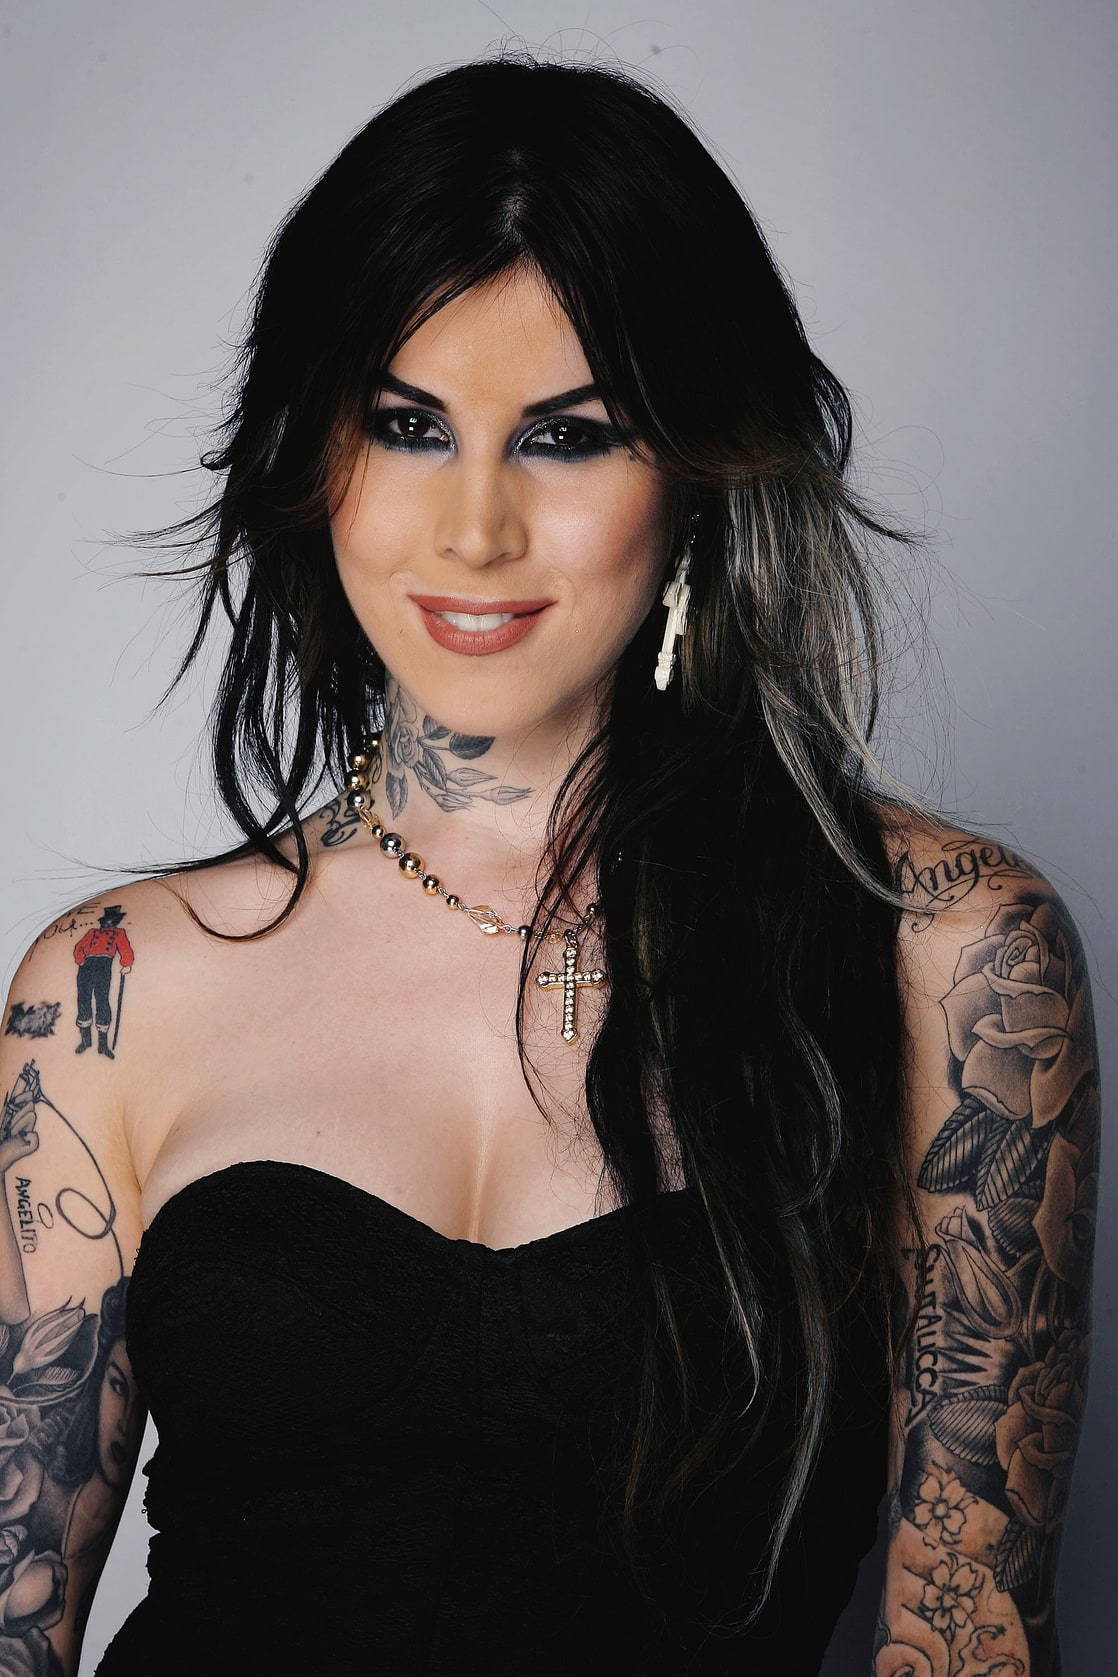 Kat Von D - Married Husband Mother Daughter Where Is She Now